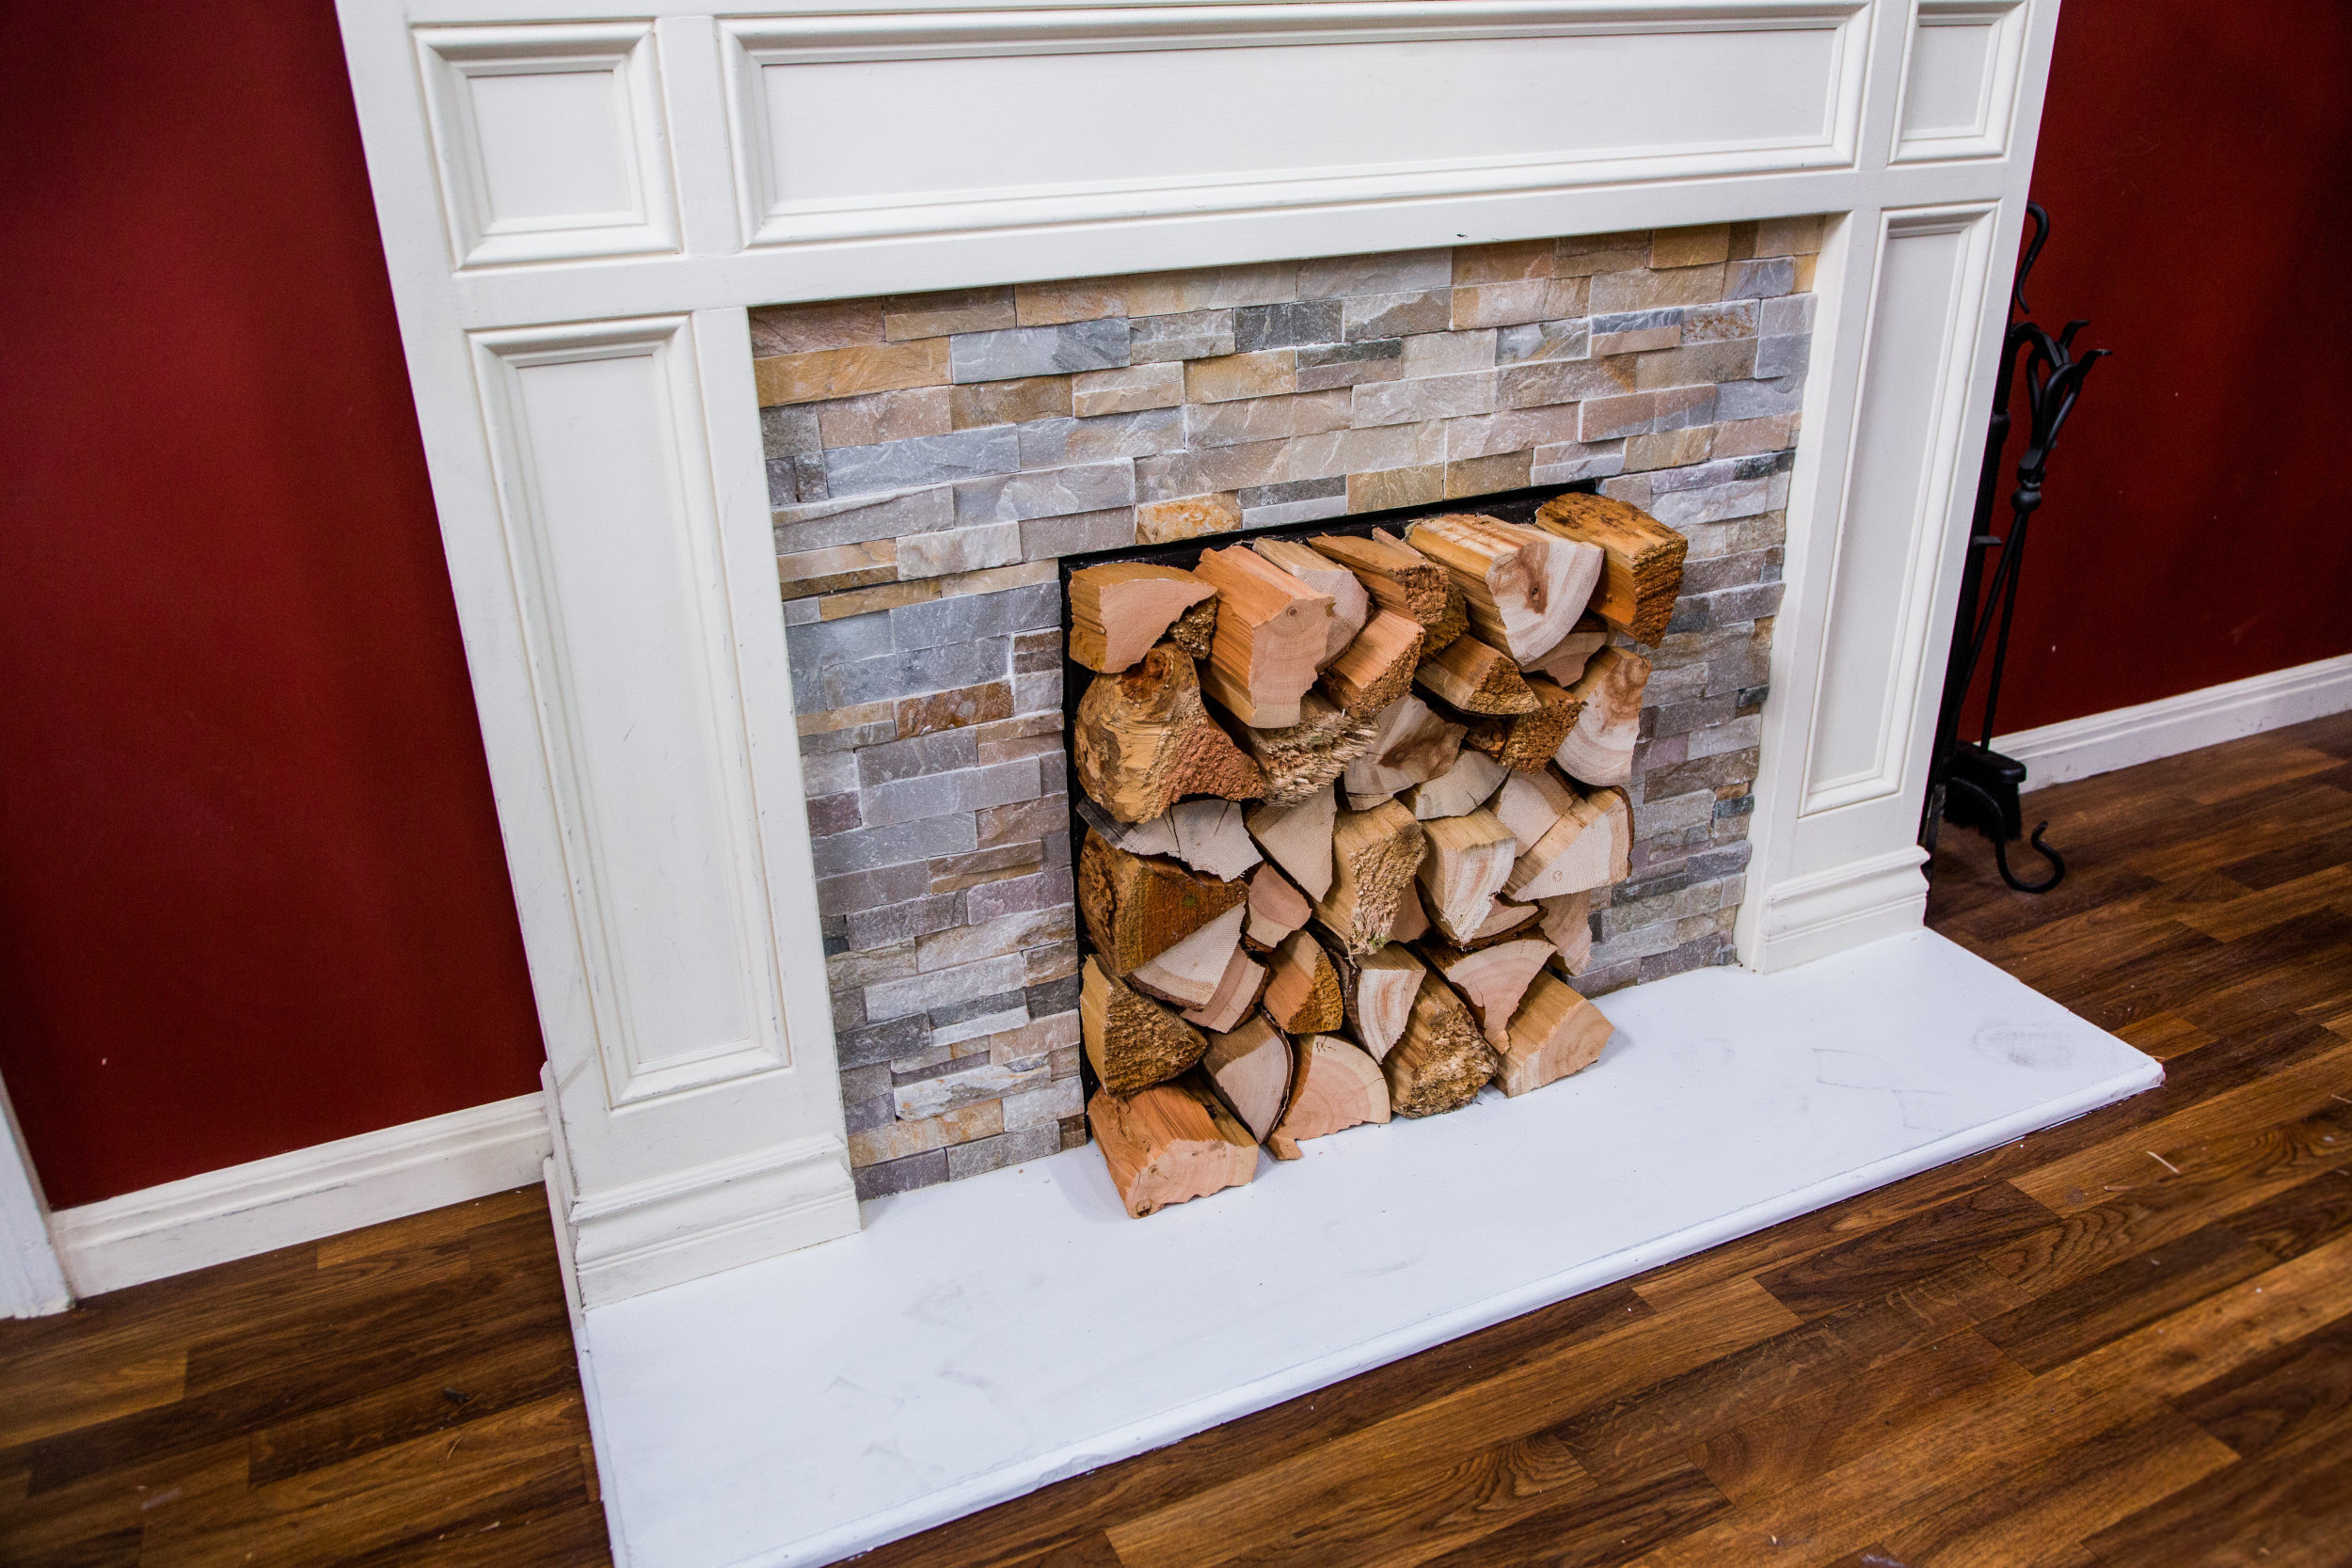 Decorative Fireplace Cover   Home & Family   Hallmark Channel